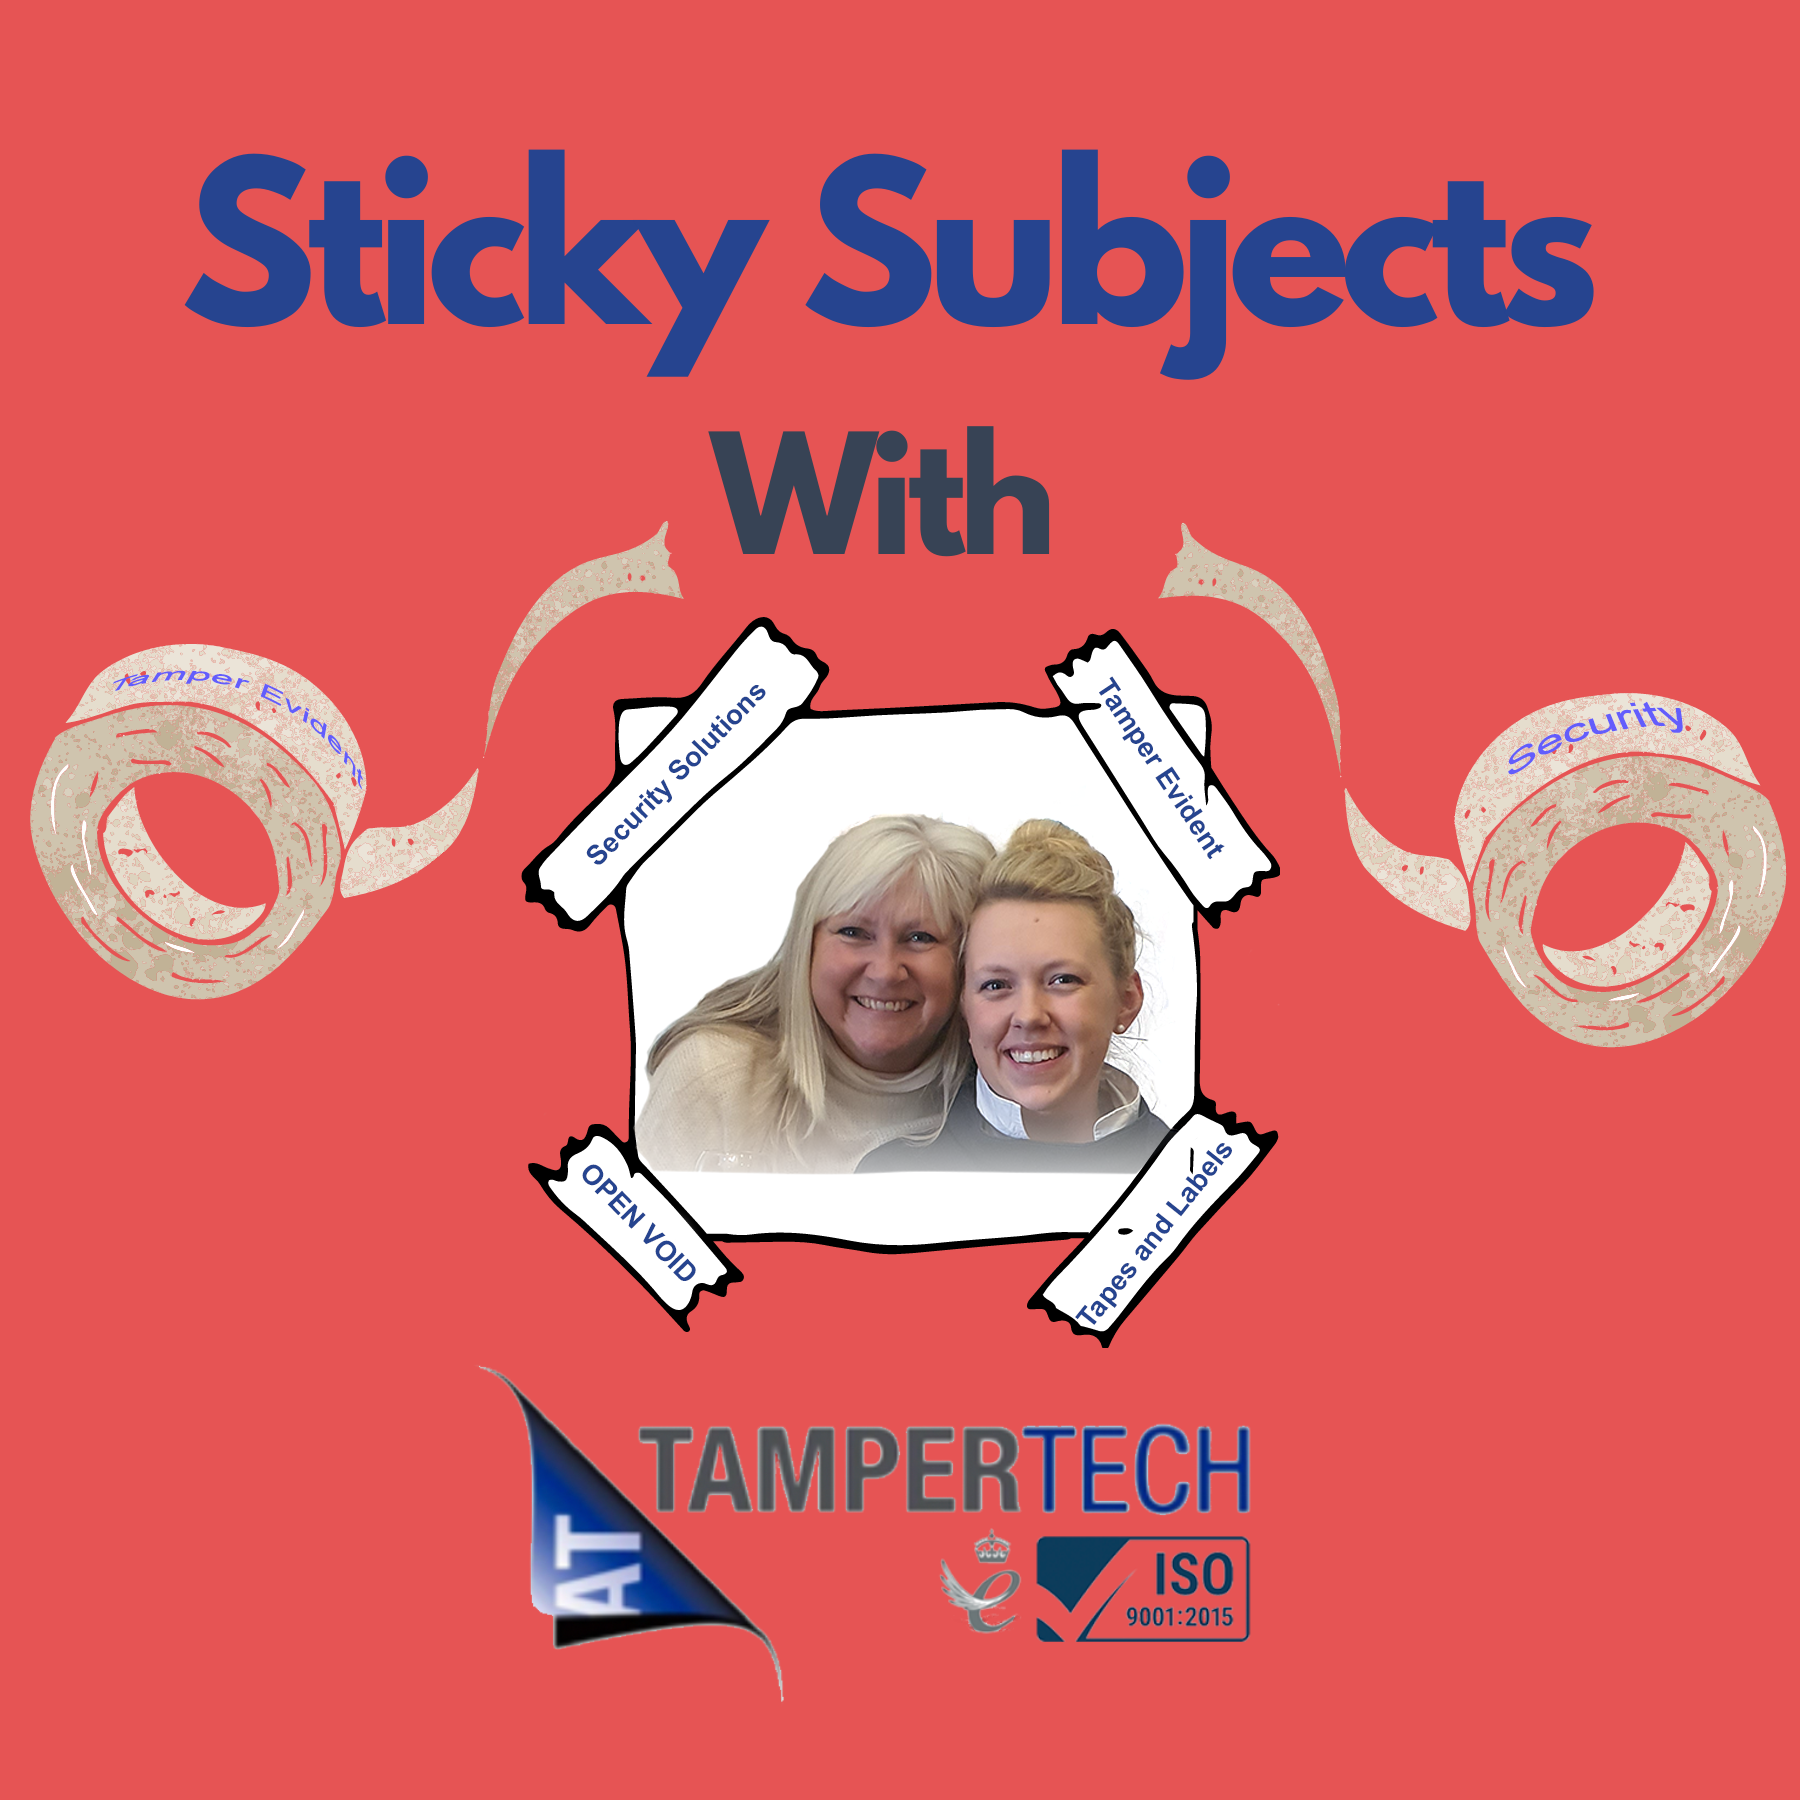 Sticky subjects with TamperTech Thumbnail